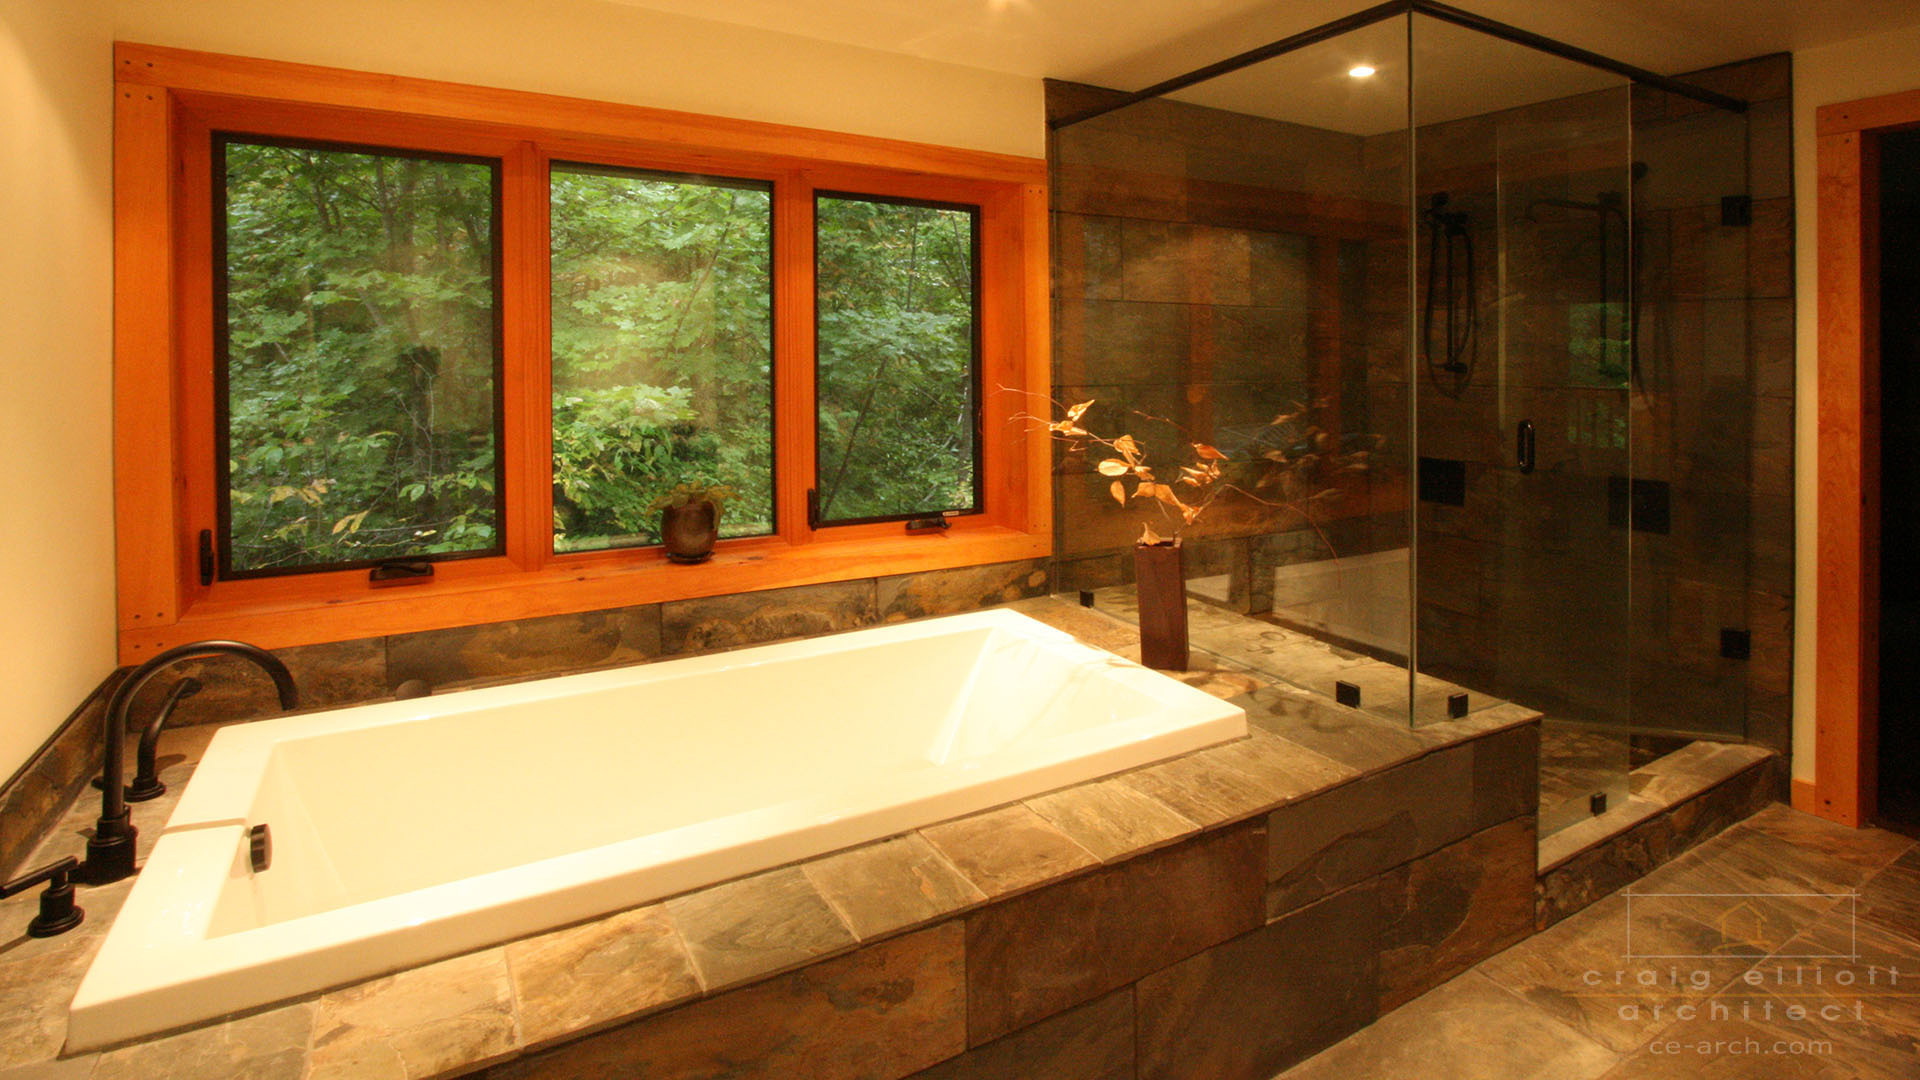 architect designed home - bancroft - ensuite